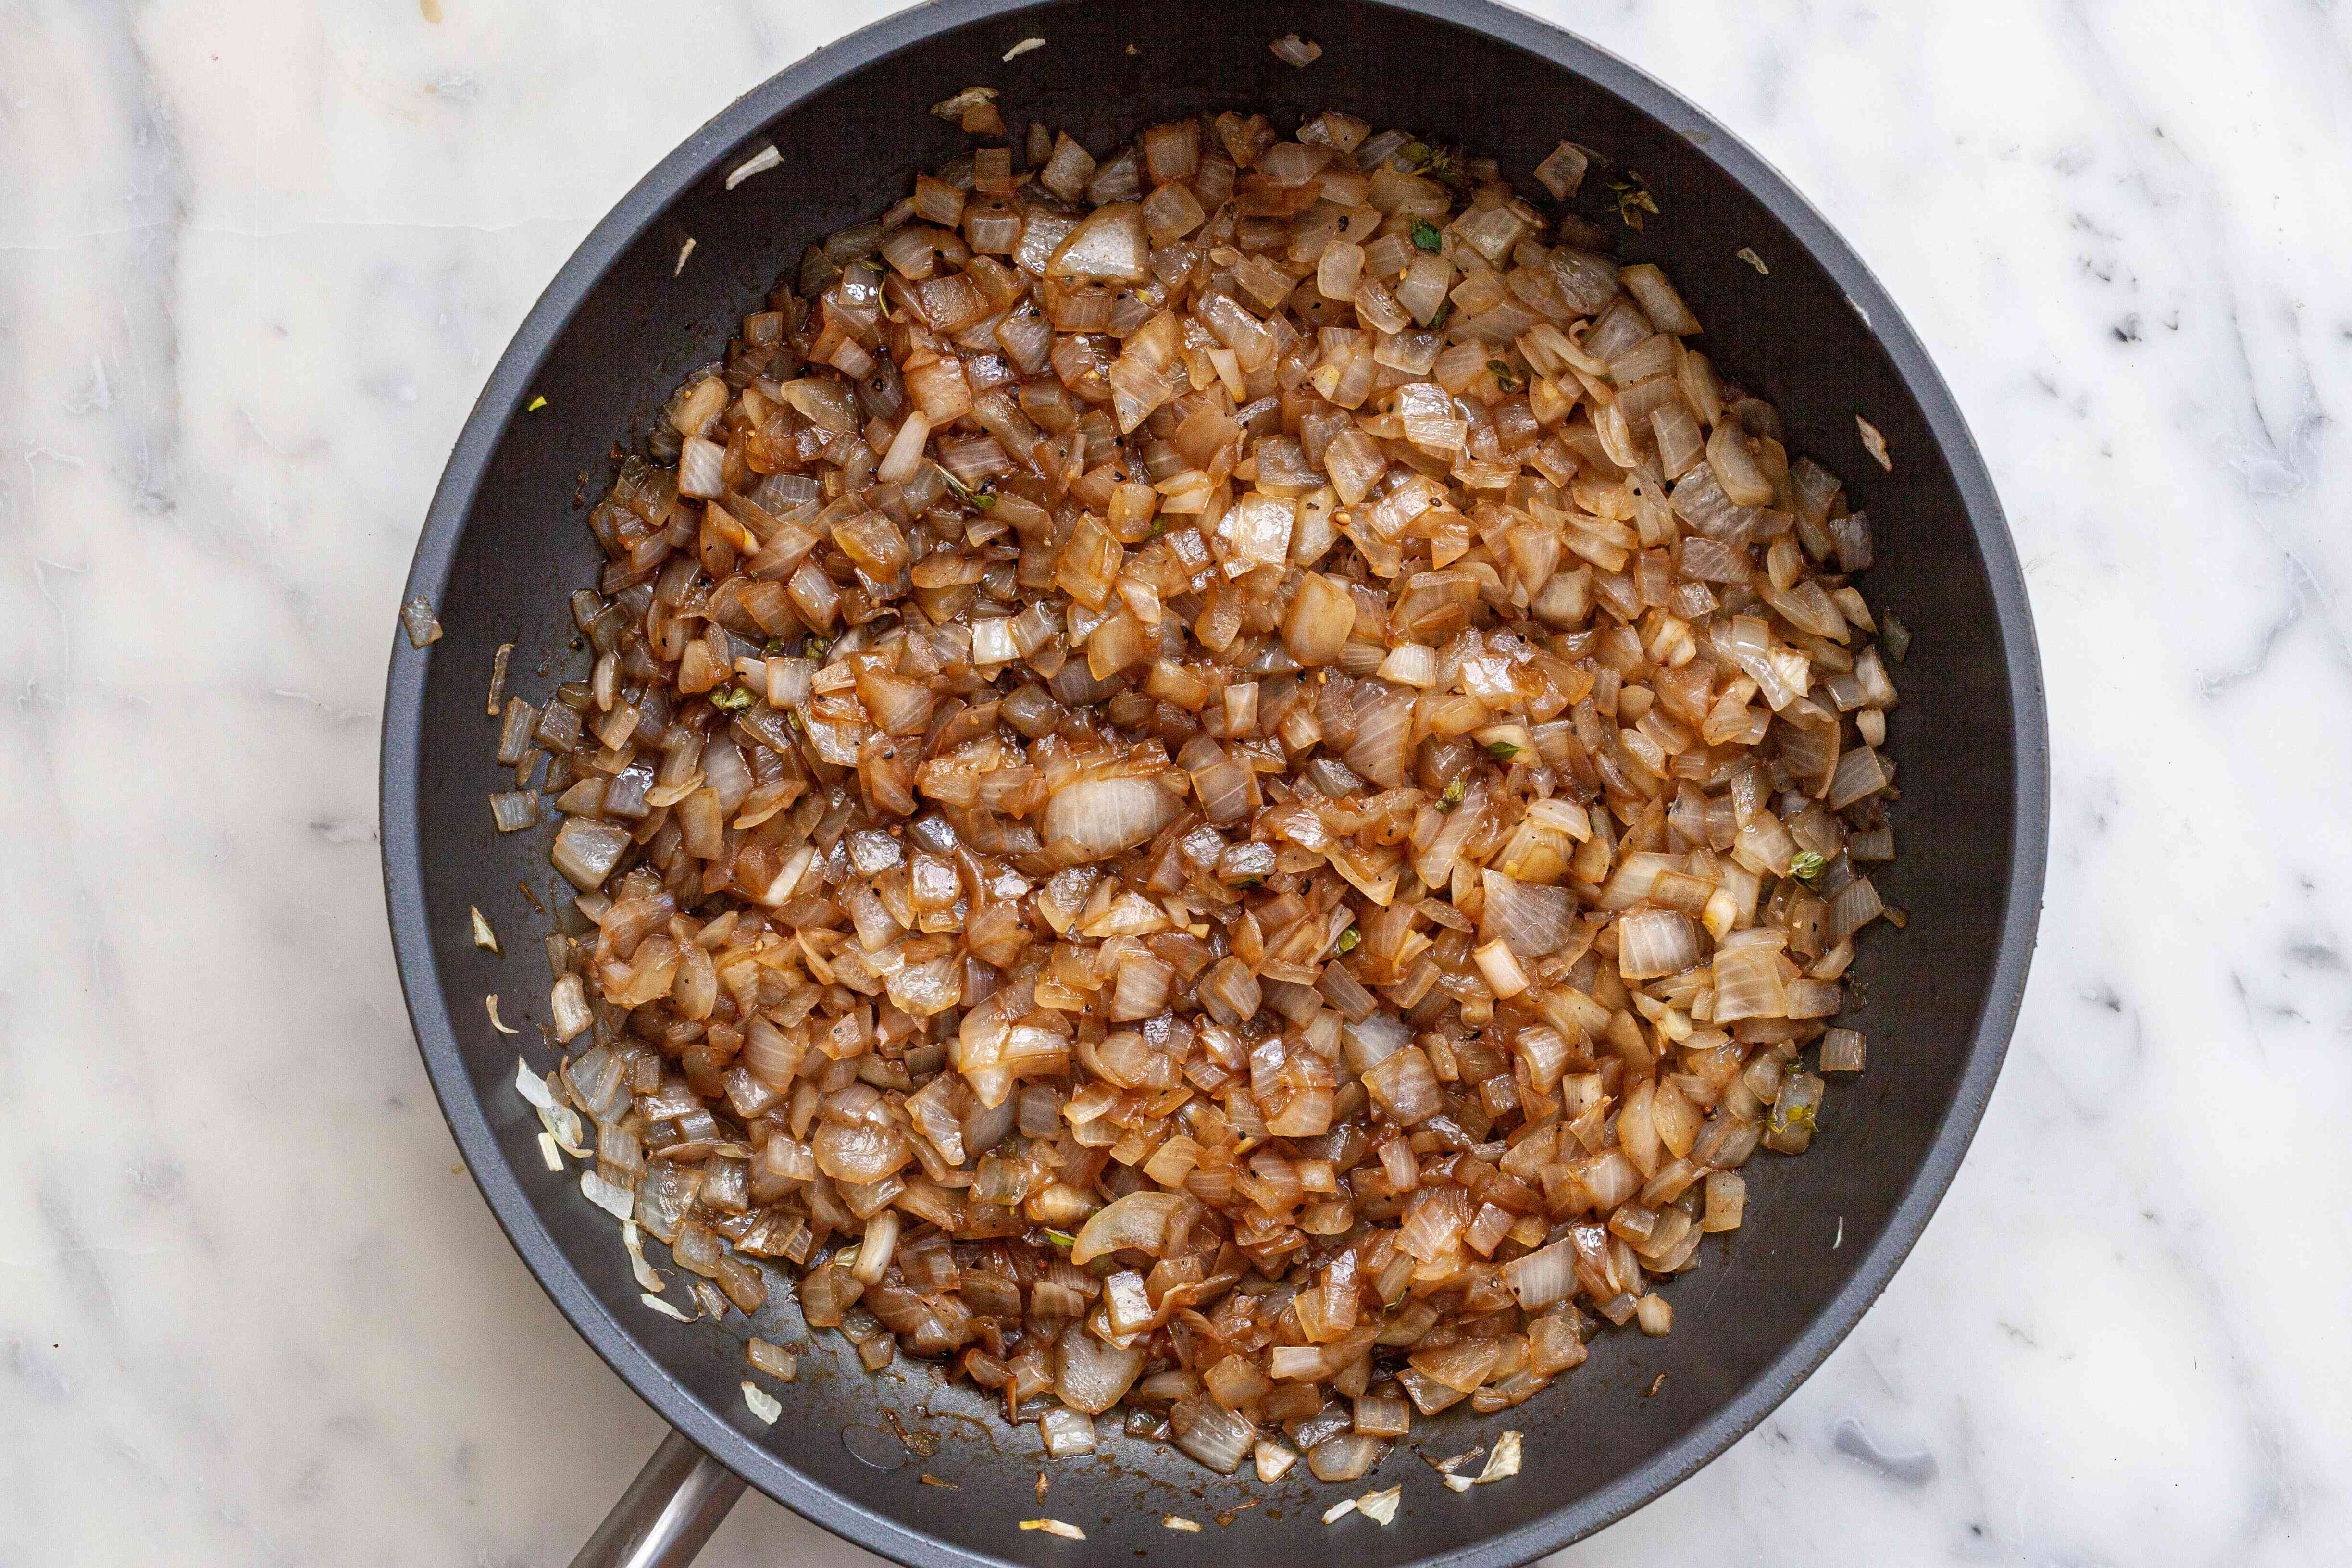 Sauteed onions in a skillet to make an Onion jam recipe with balsamic vinegar.